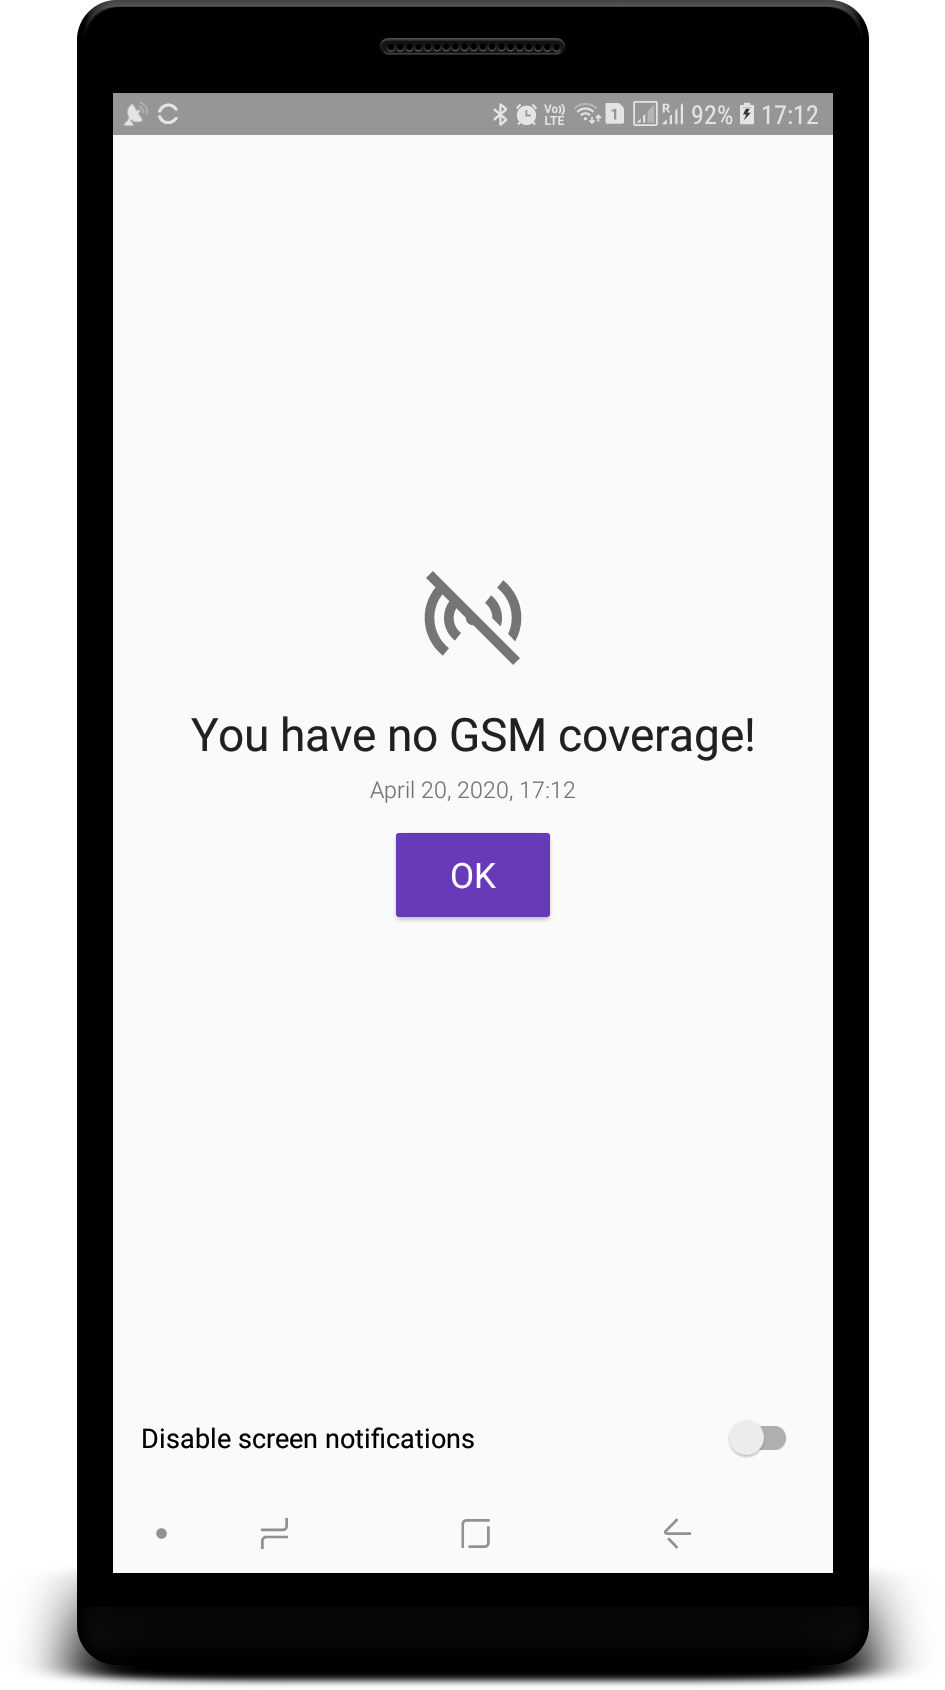 You have no GSM coverage